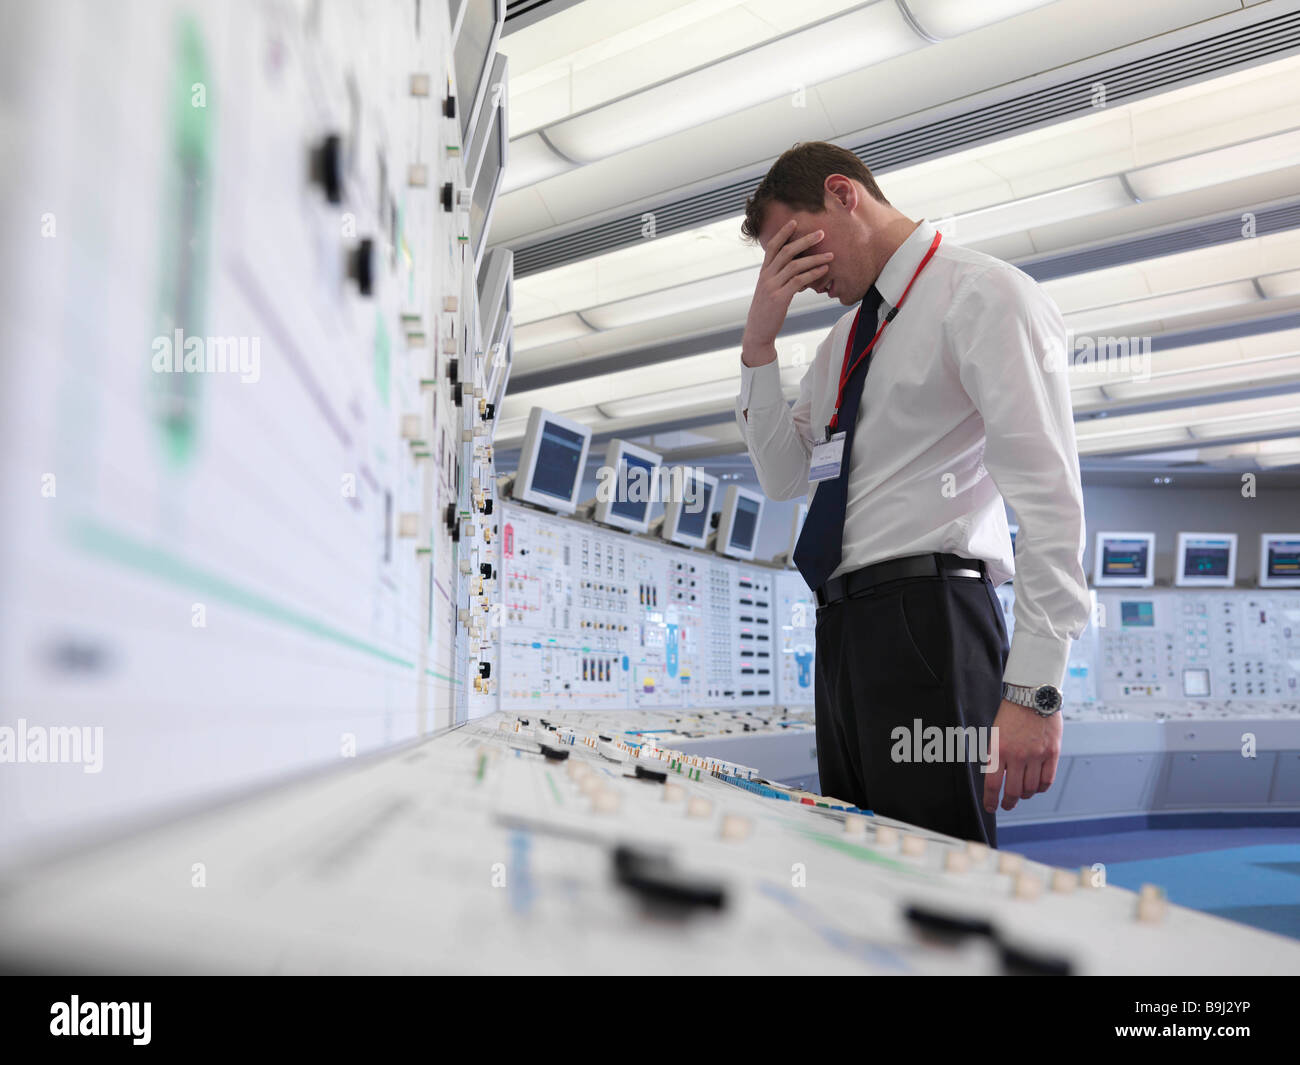 Distressed operator in control room - Stock Image